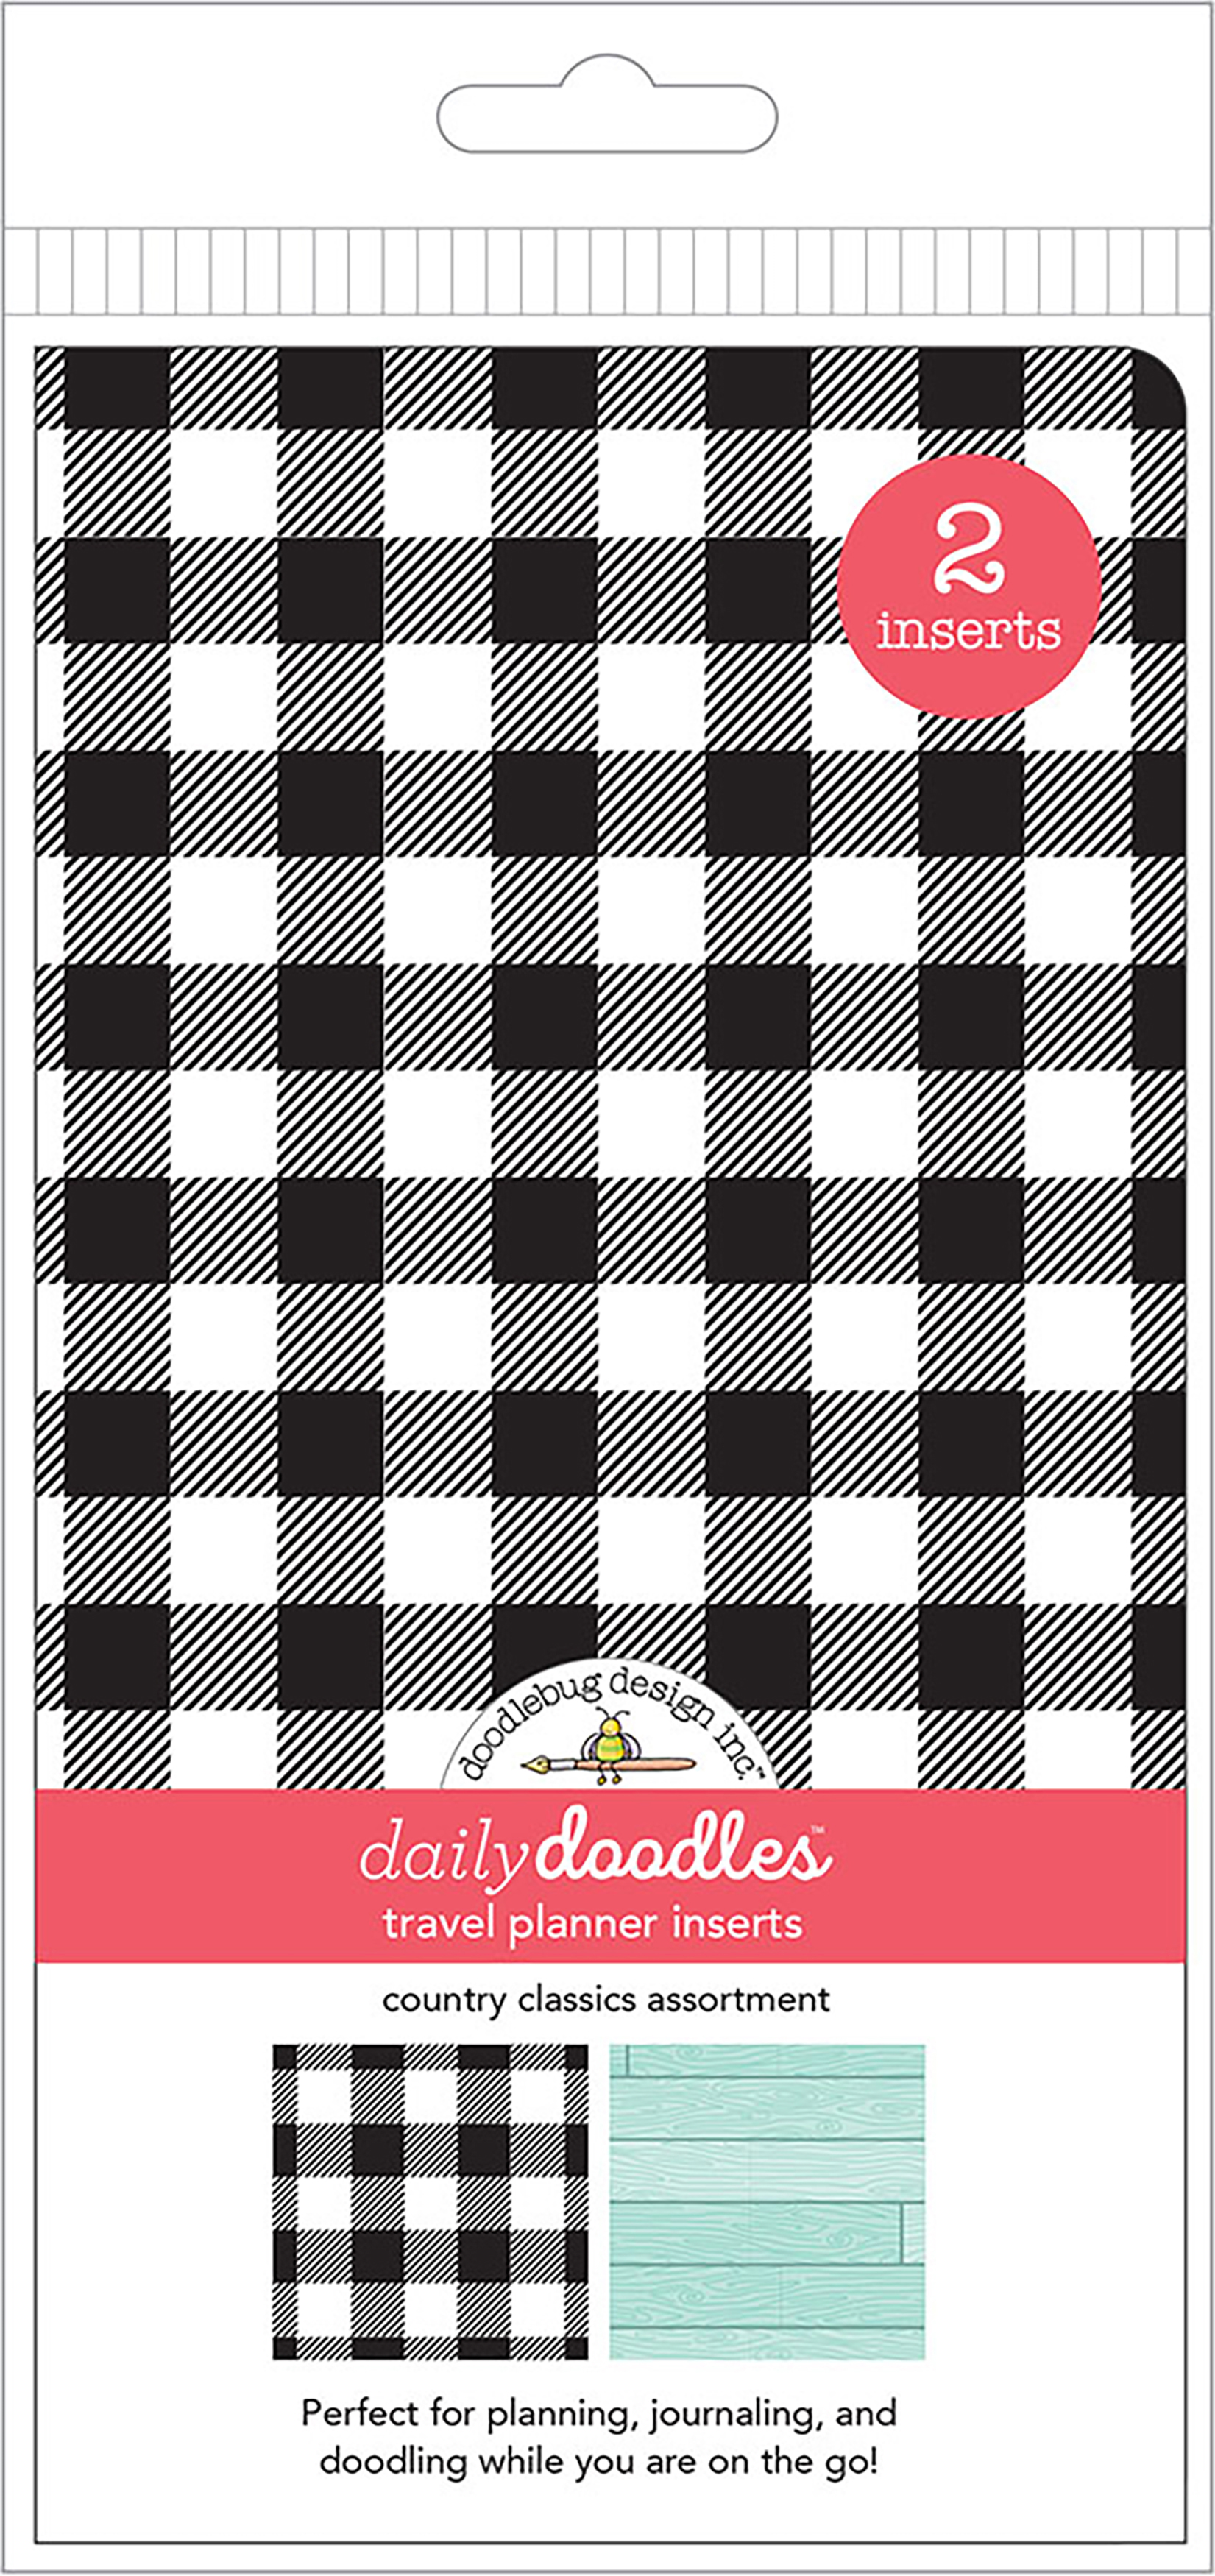 Doodlebug Daily Doodles - Country Classics Travel Planner Inserts, 2/Pack